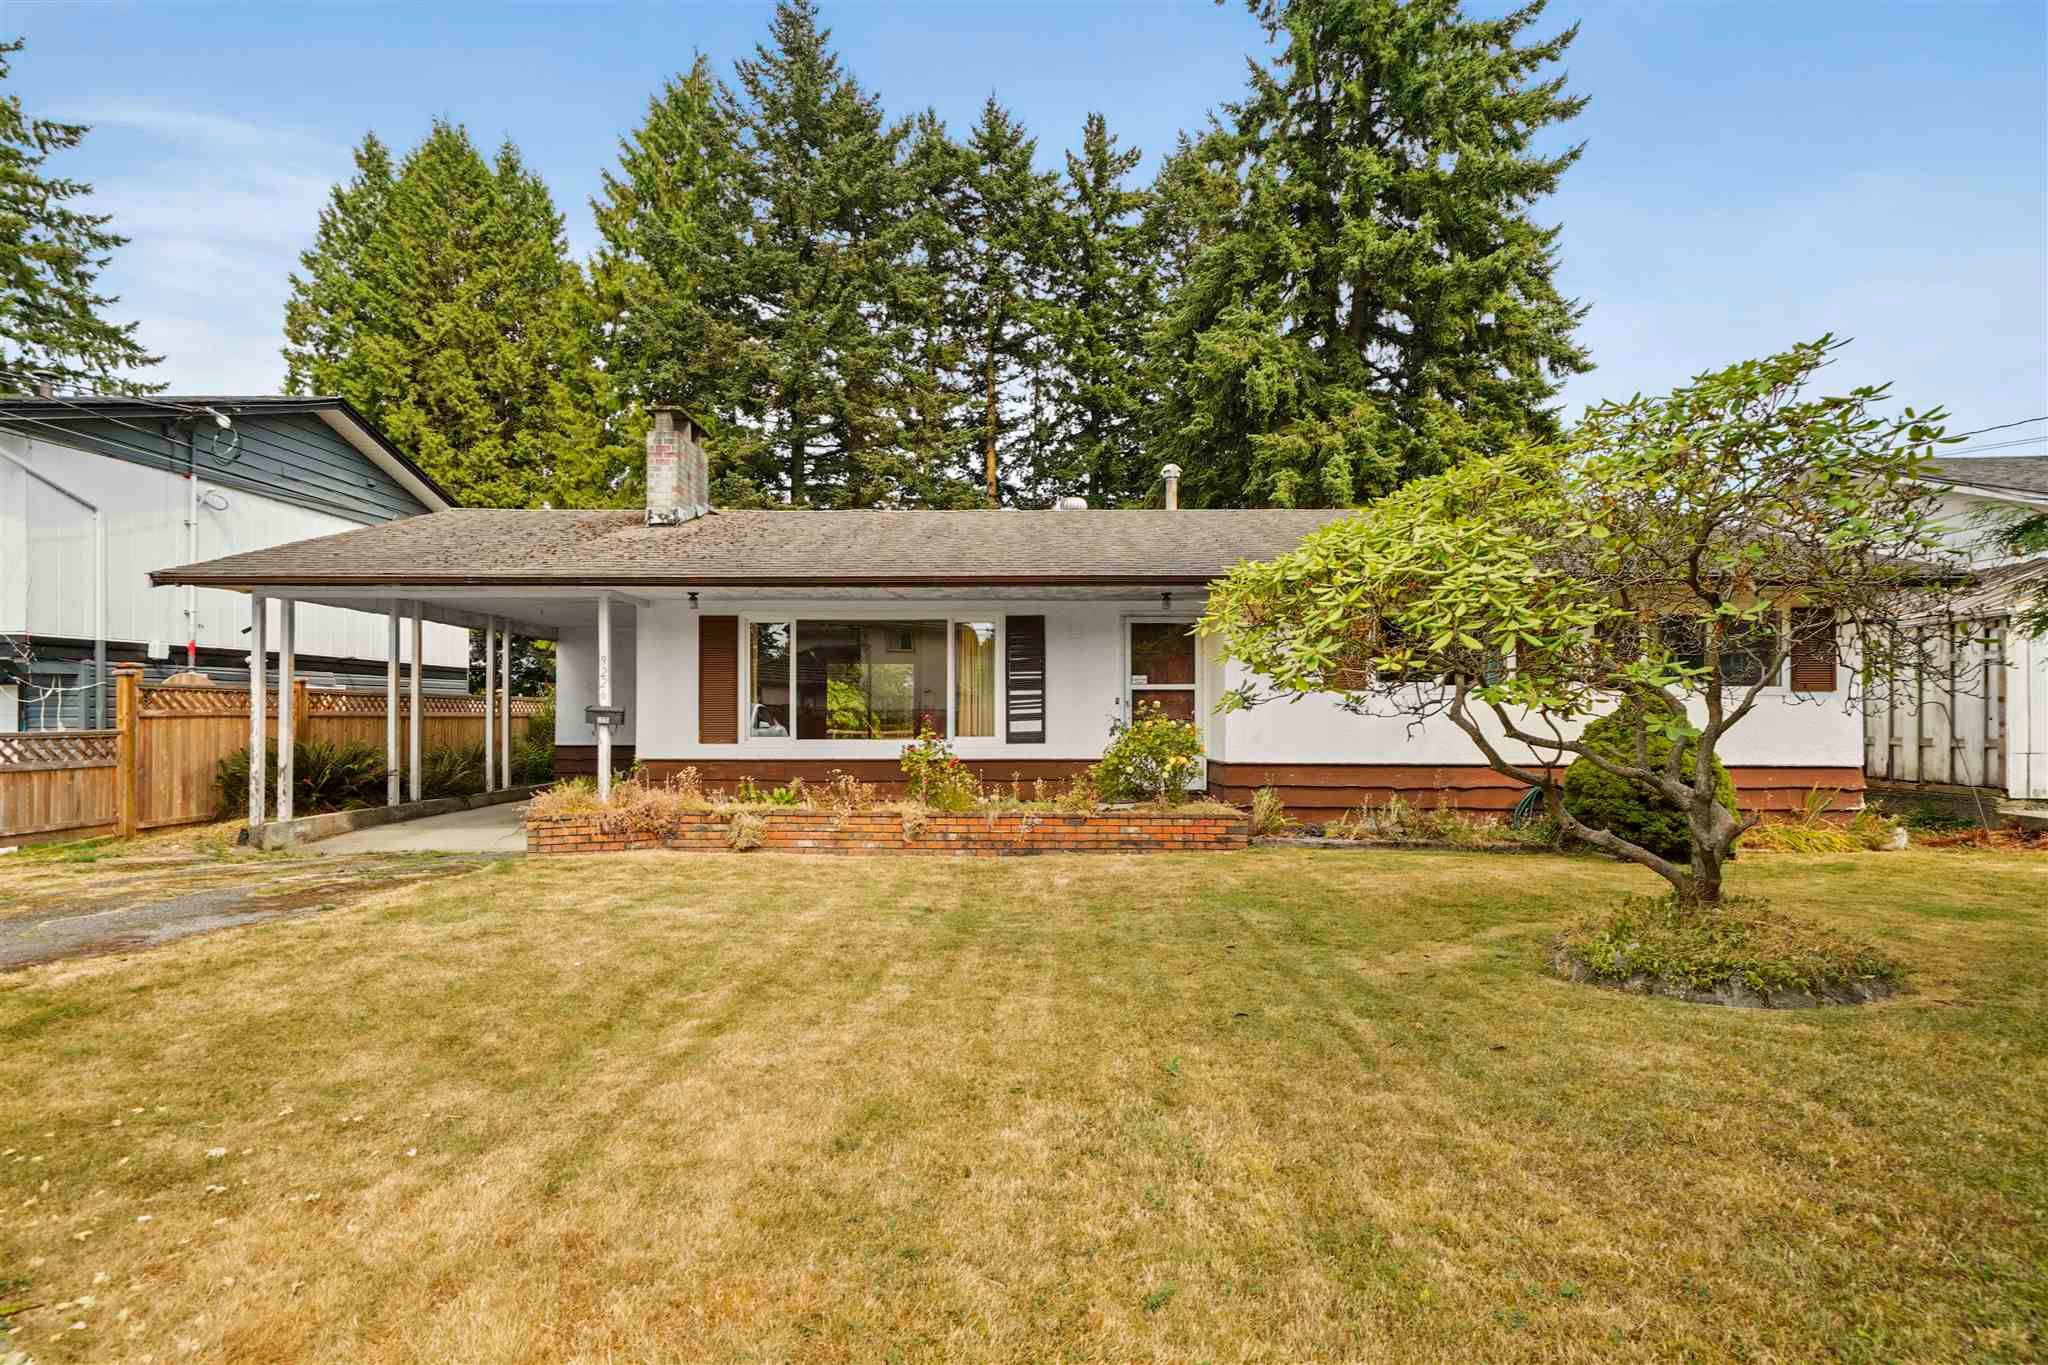 Main Photo: 9226 119A Street in Delta: Annieville House for sale (N. Delta)  : MLS®# R2606485